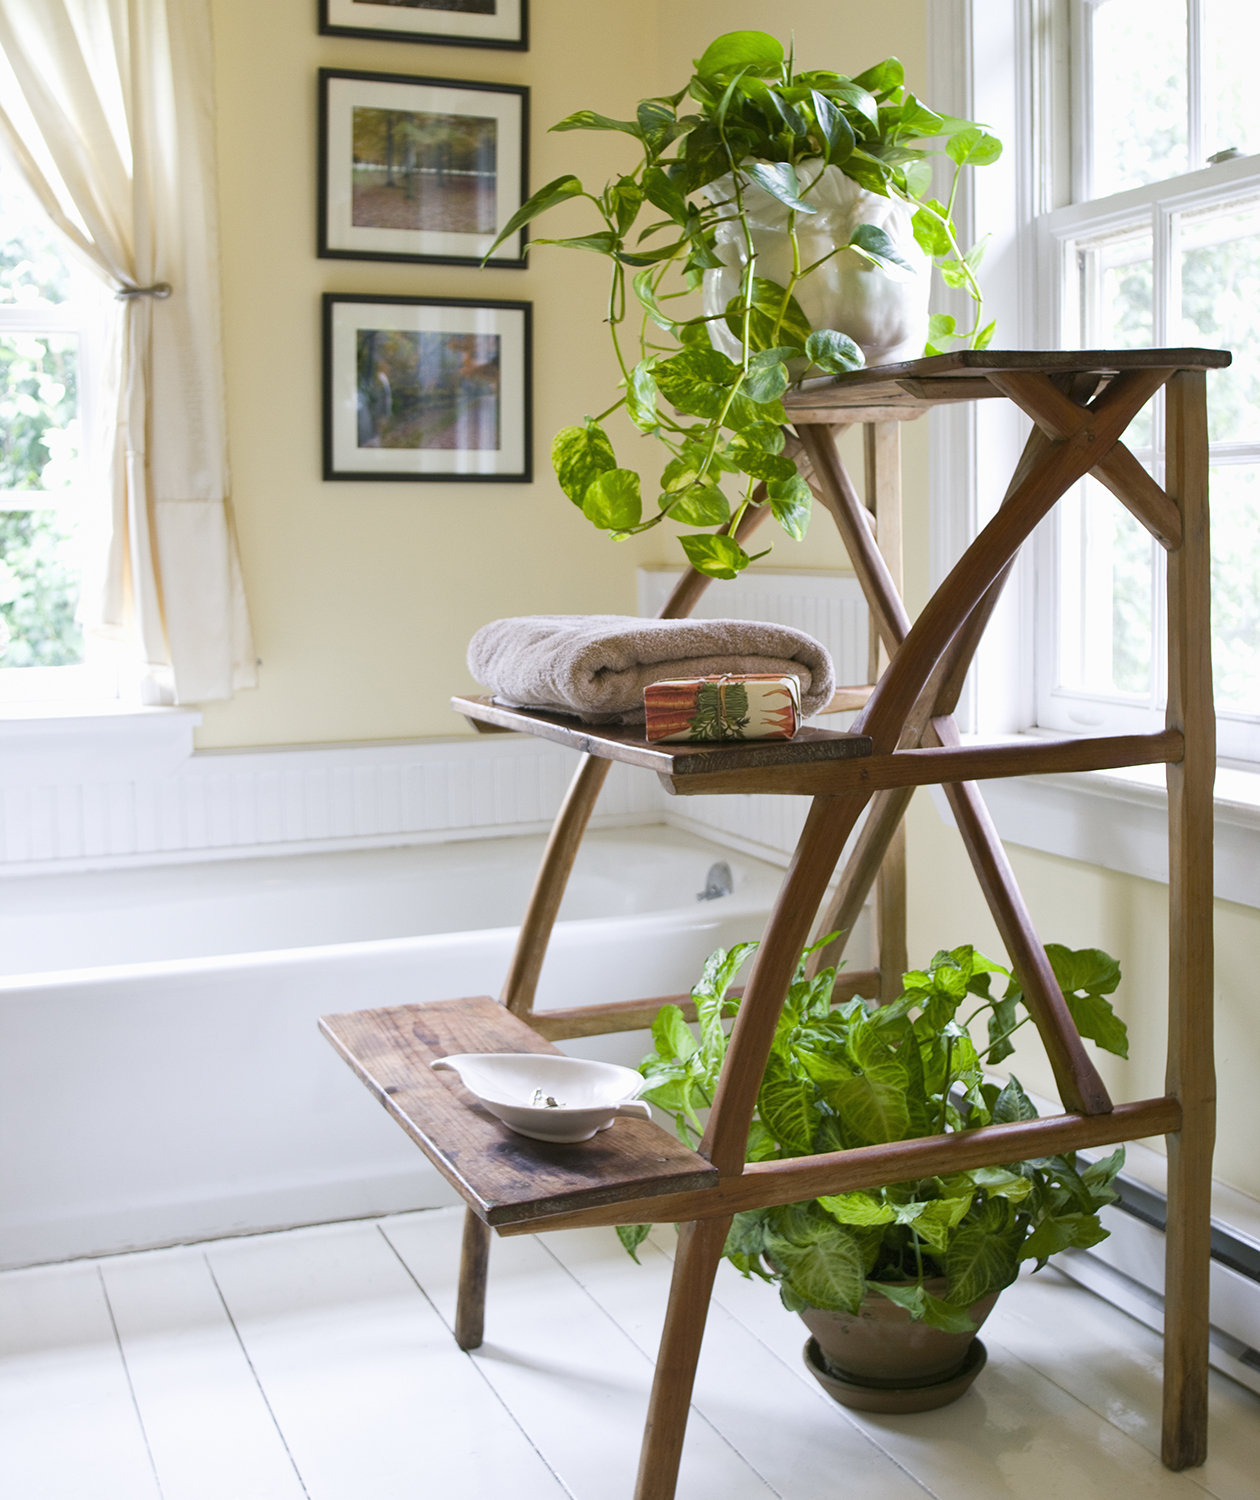 Bathroom with ladder shelves and plants